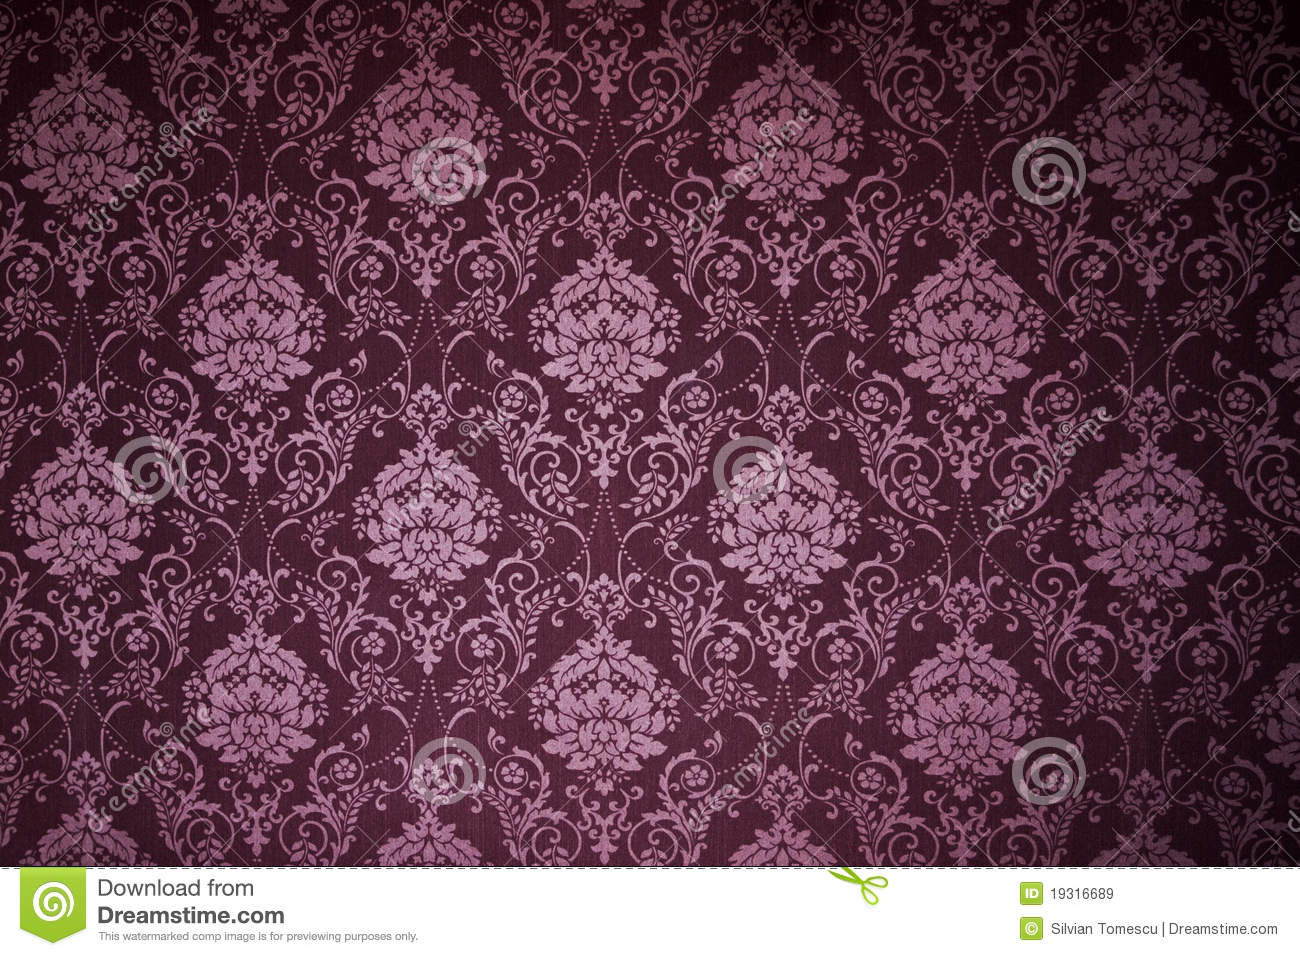 victorian wallpaper texture  Victorian Wallpaper Textures Stock Image - Image of vintage, ornate ...